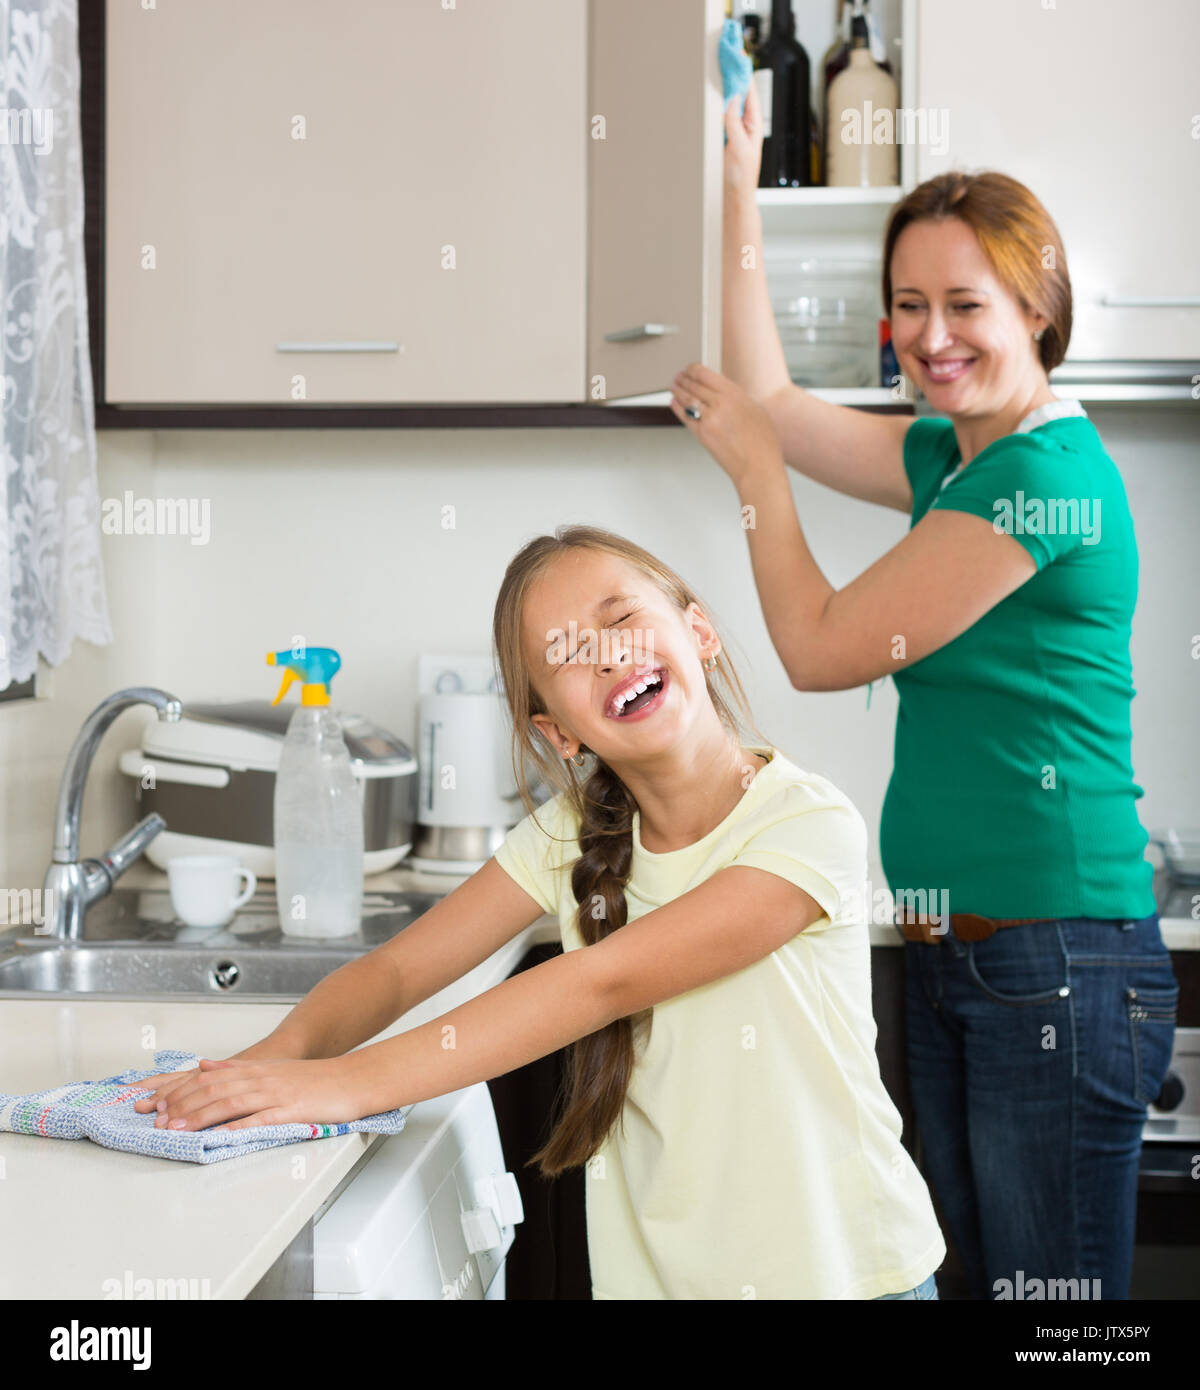 dusting furniture. Cheerful Girl Helping Mother Dusting Furniture Indoor. Focus On I